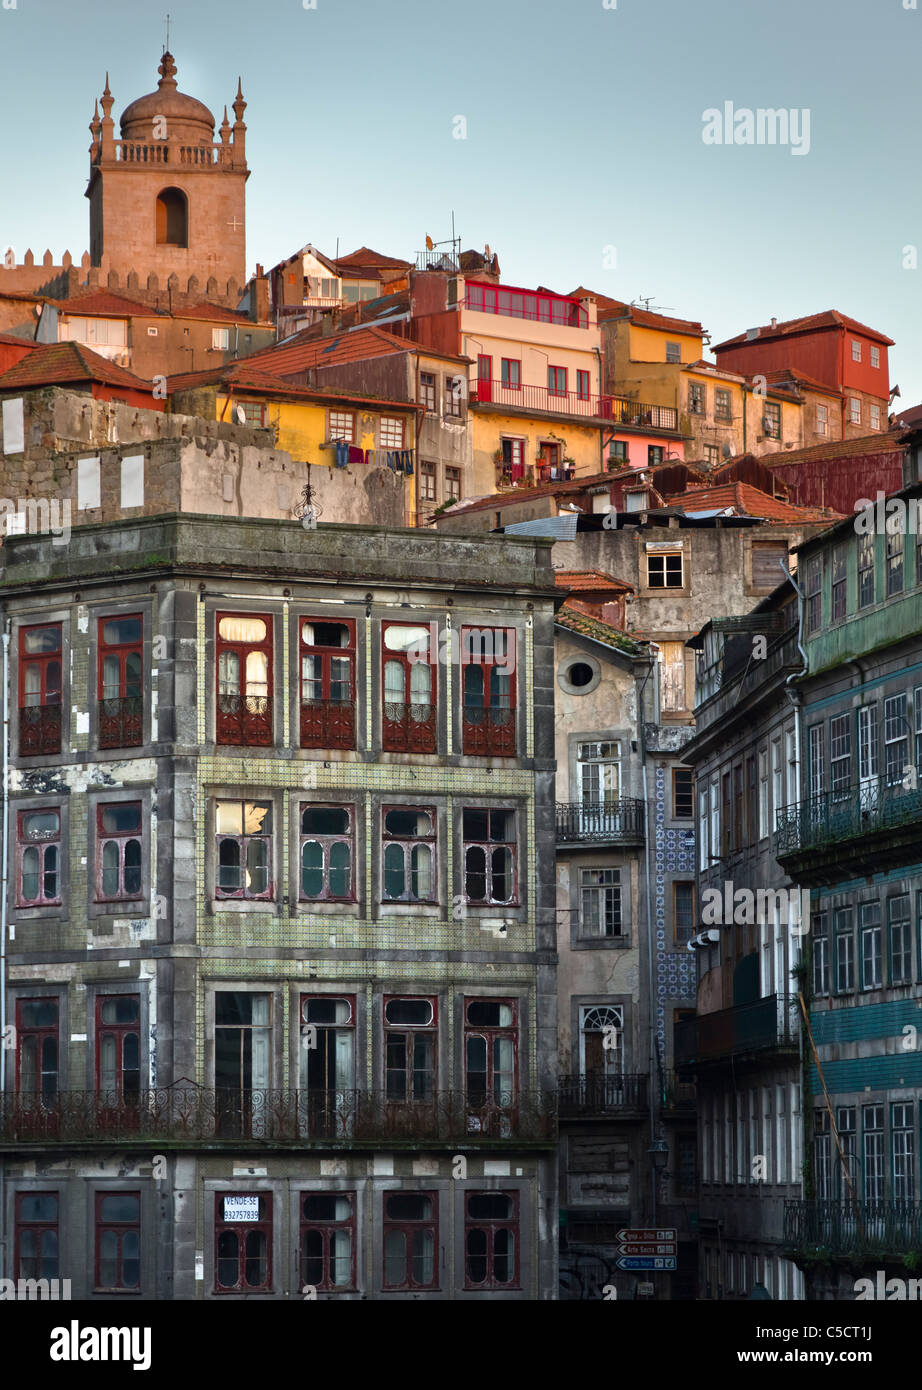 Buildings of Porto, Portugal - Stock Image